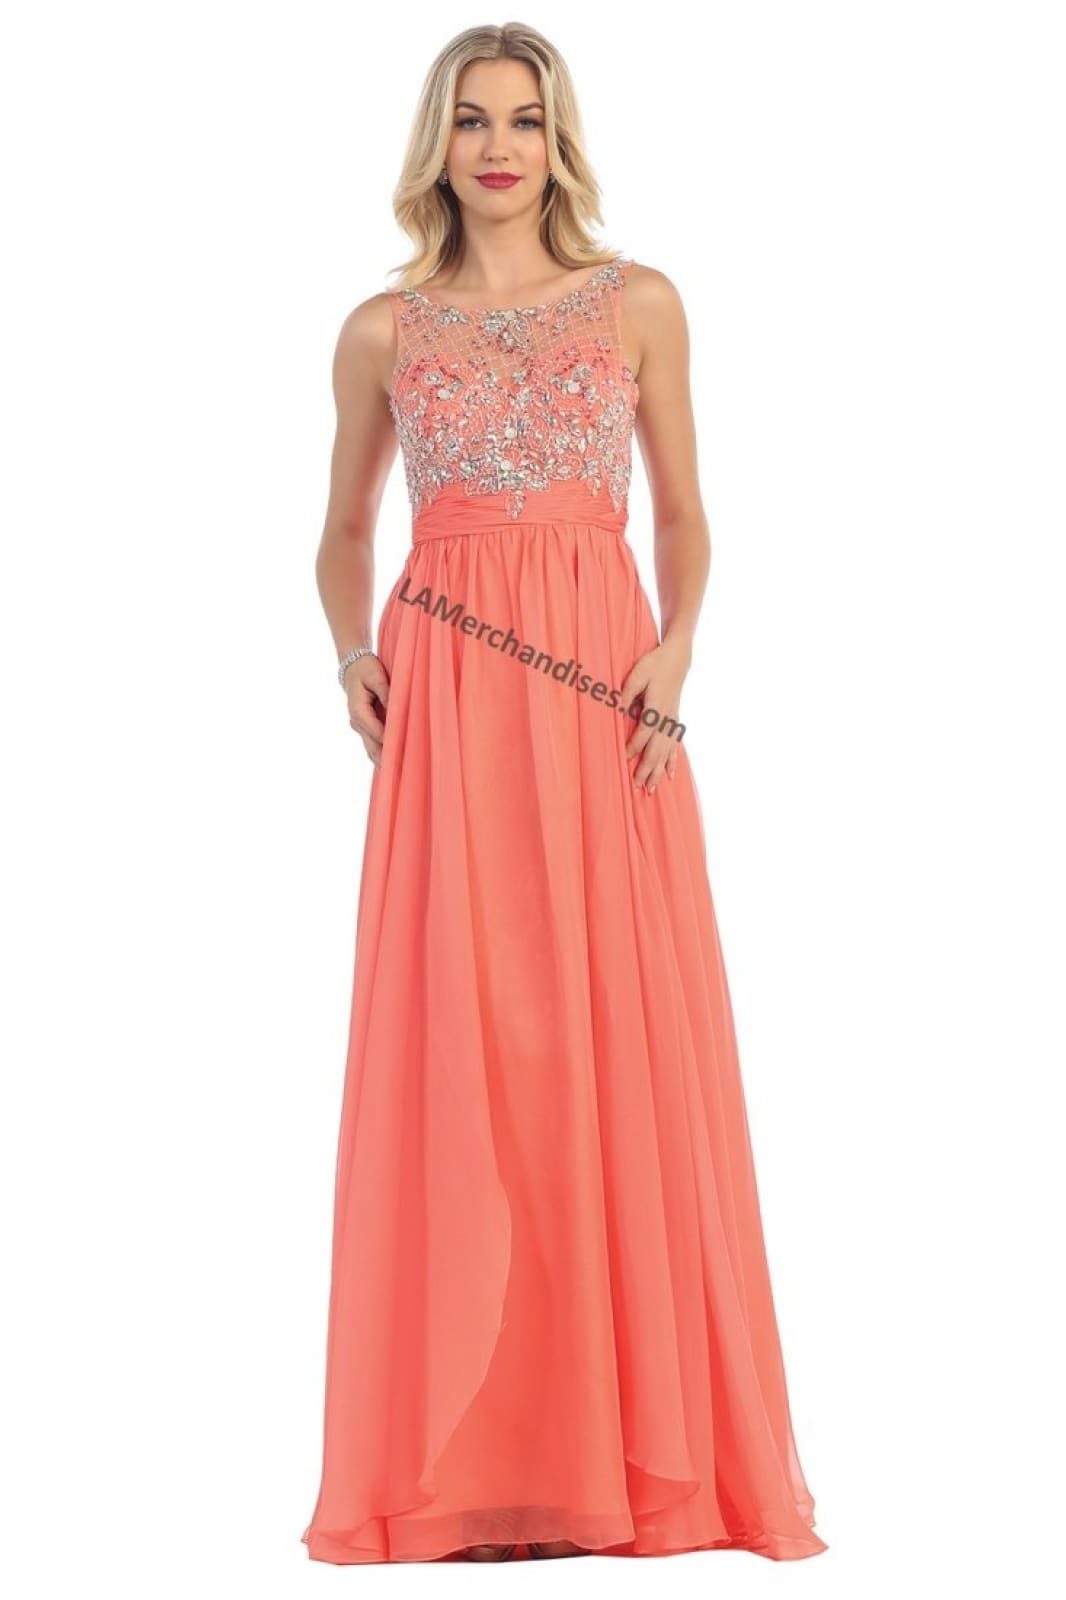 A chiffon A-line dress with sequins & Illusion neckline-